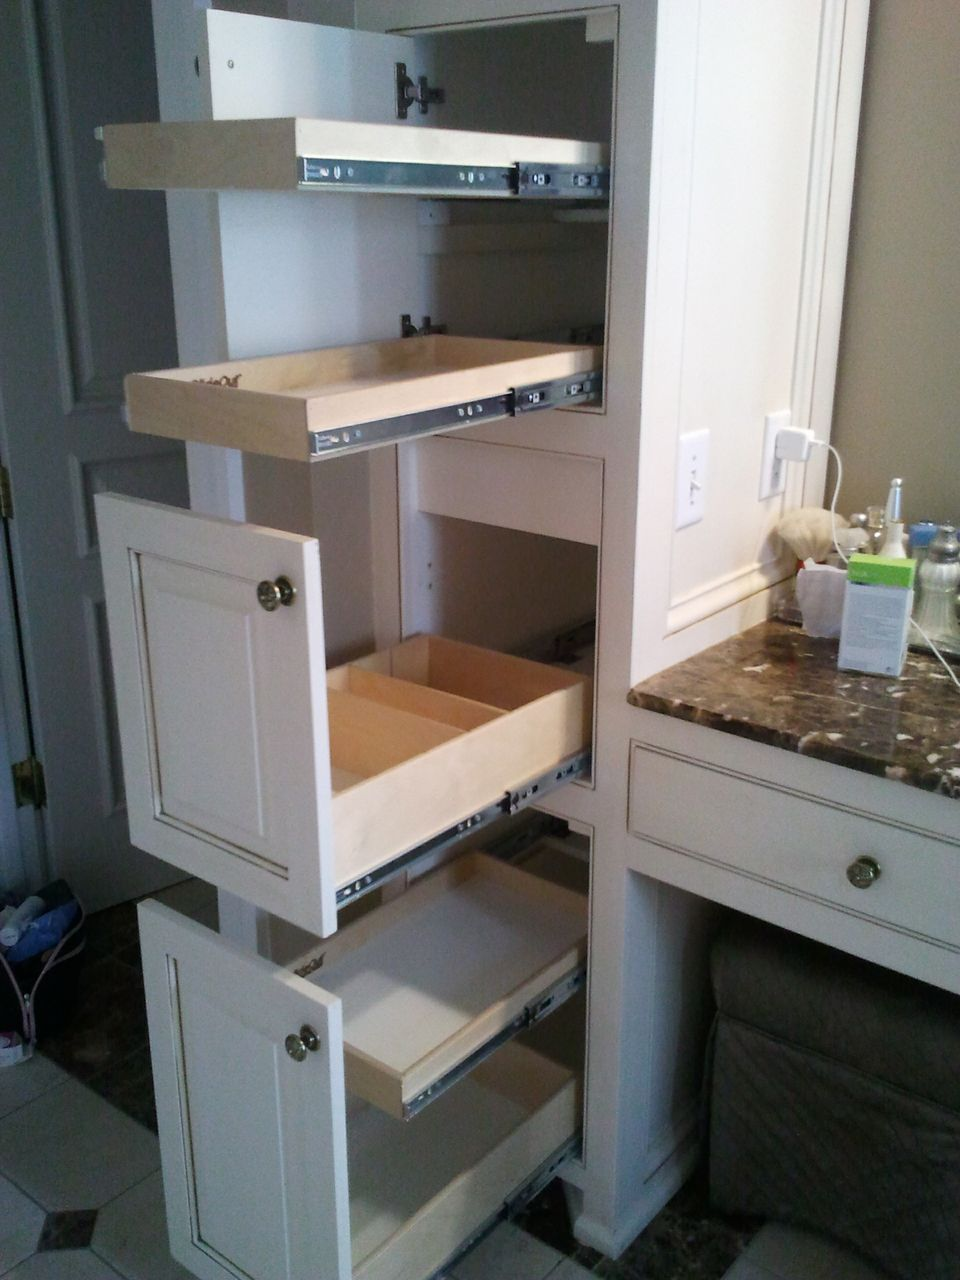 Modern bathroom storage cabinet - Need More Vanity Storage Space Call Shelfgenie Of Baltimore Get Slide Out Shelves For Your Perry Hall Home Glide Out Shelves